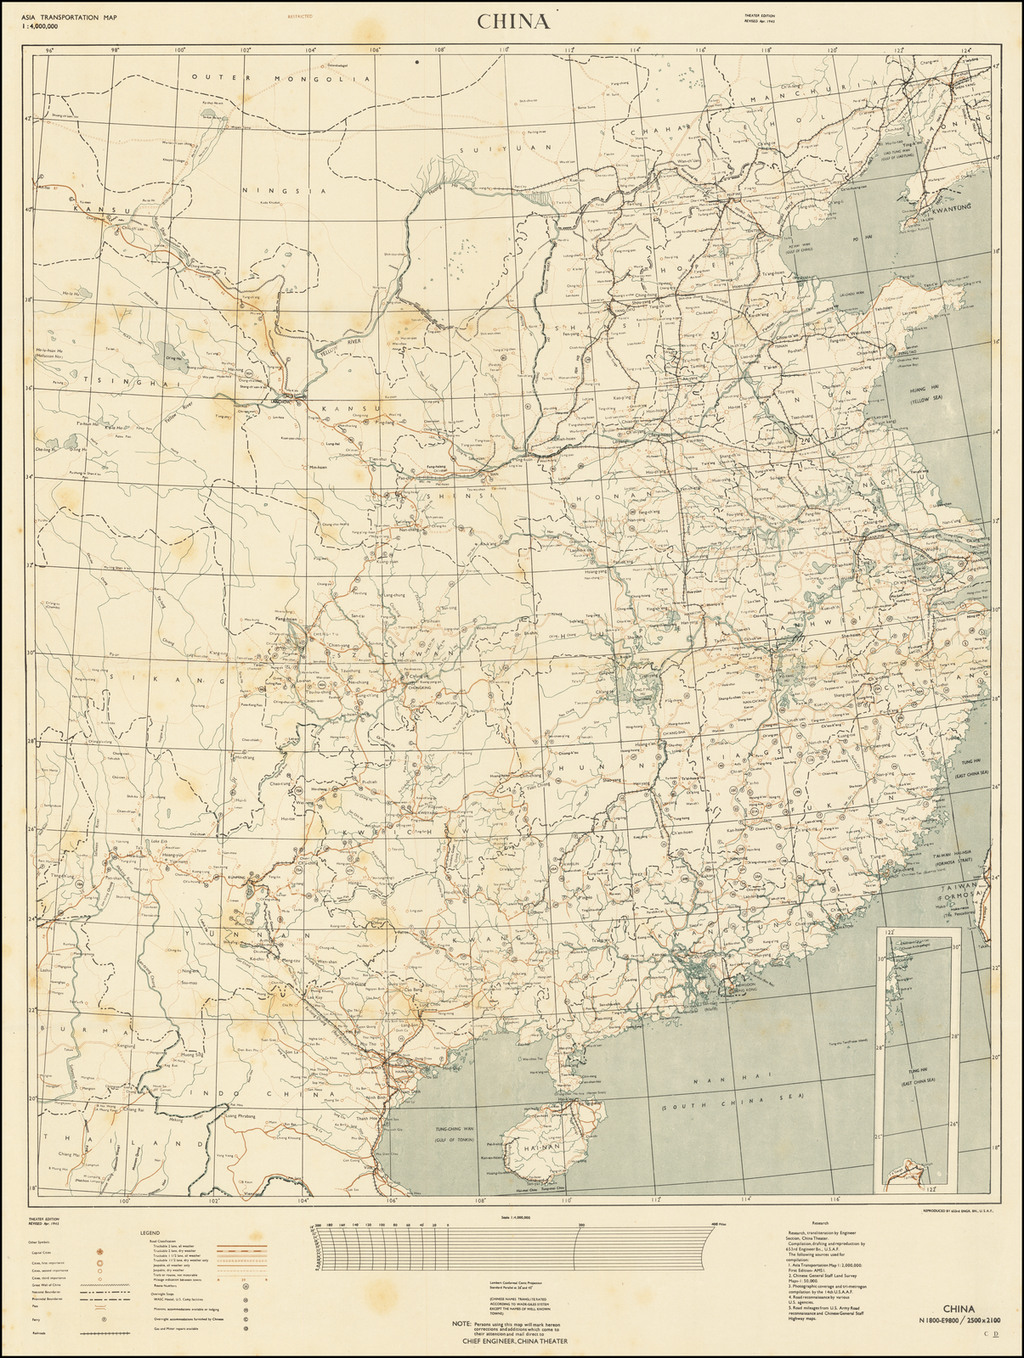 (Second World War - China). Asia Transportation Map | Restricted | China By 653rd Engineer Topographic Battalion, U.S.A.F.